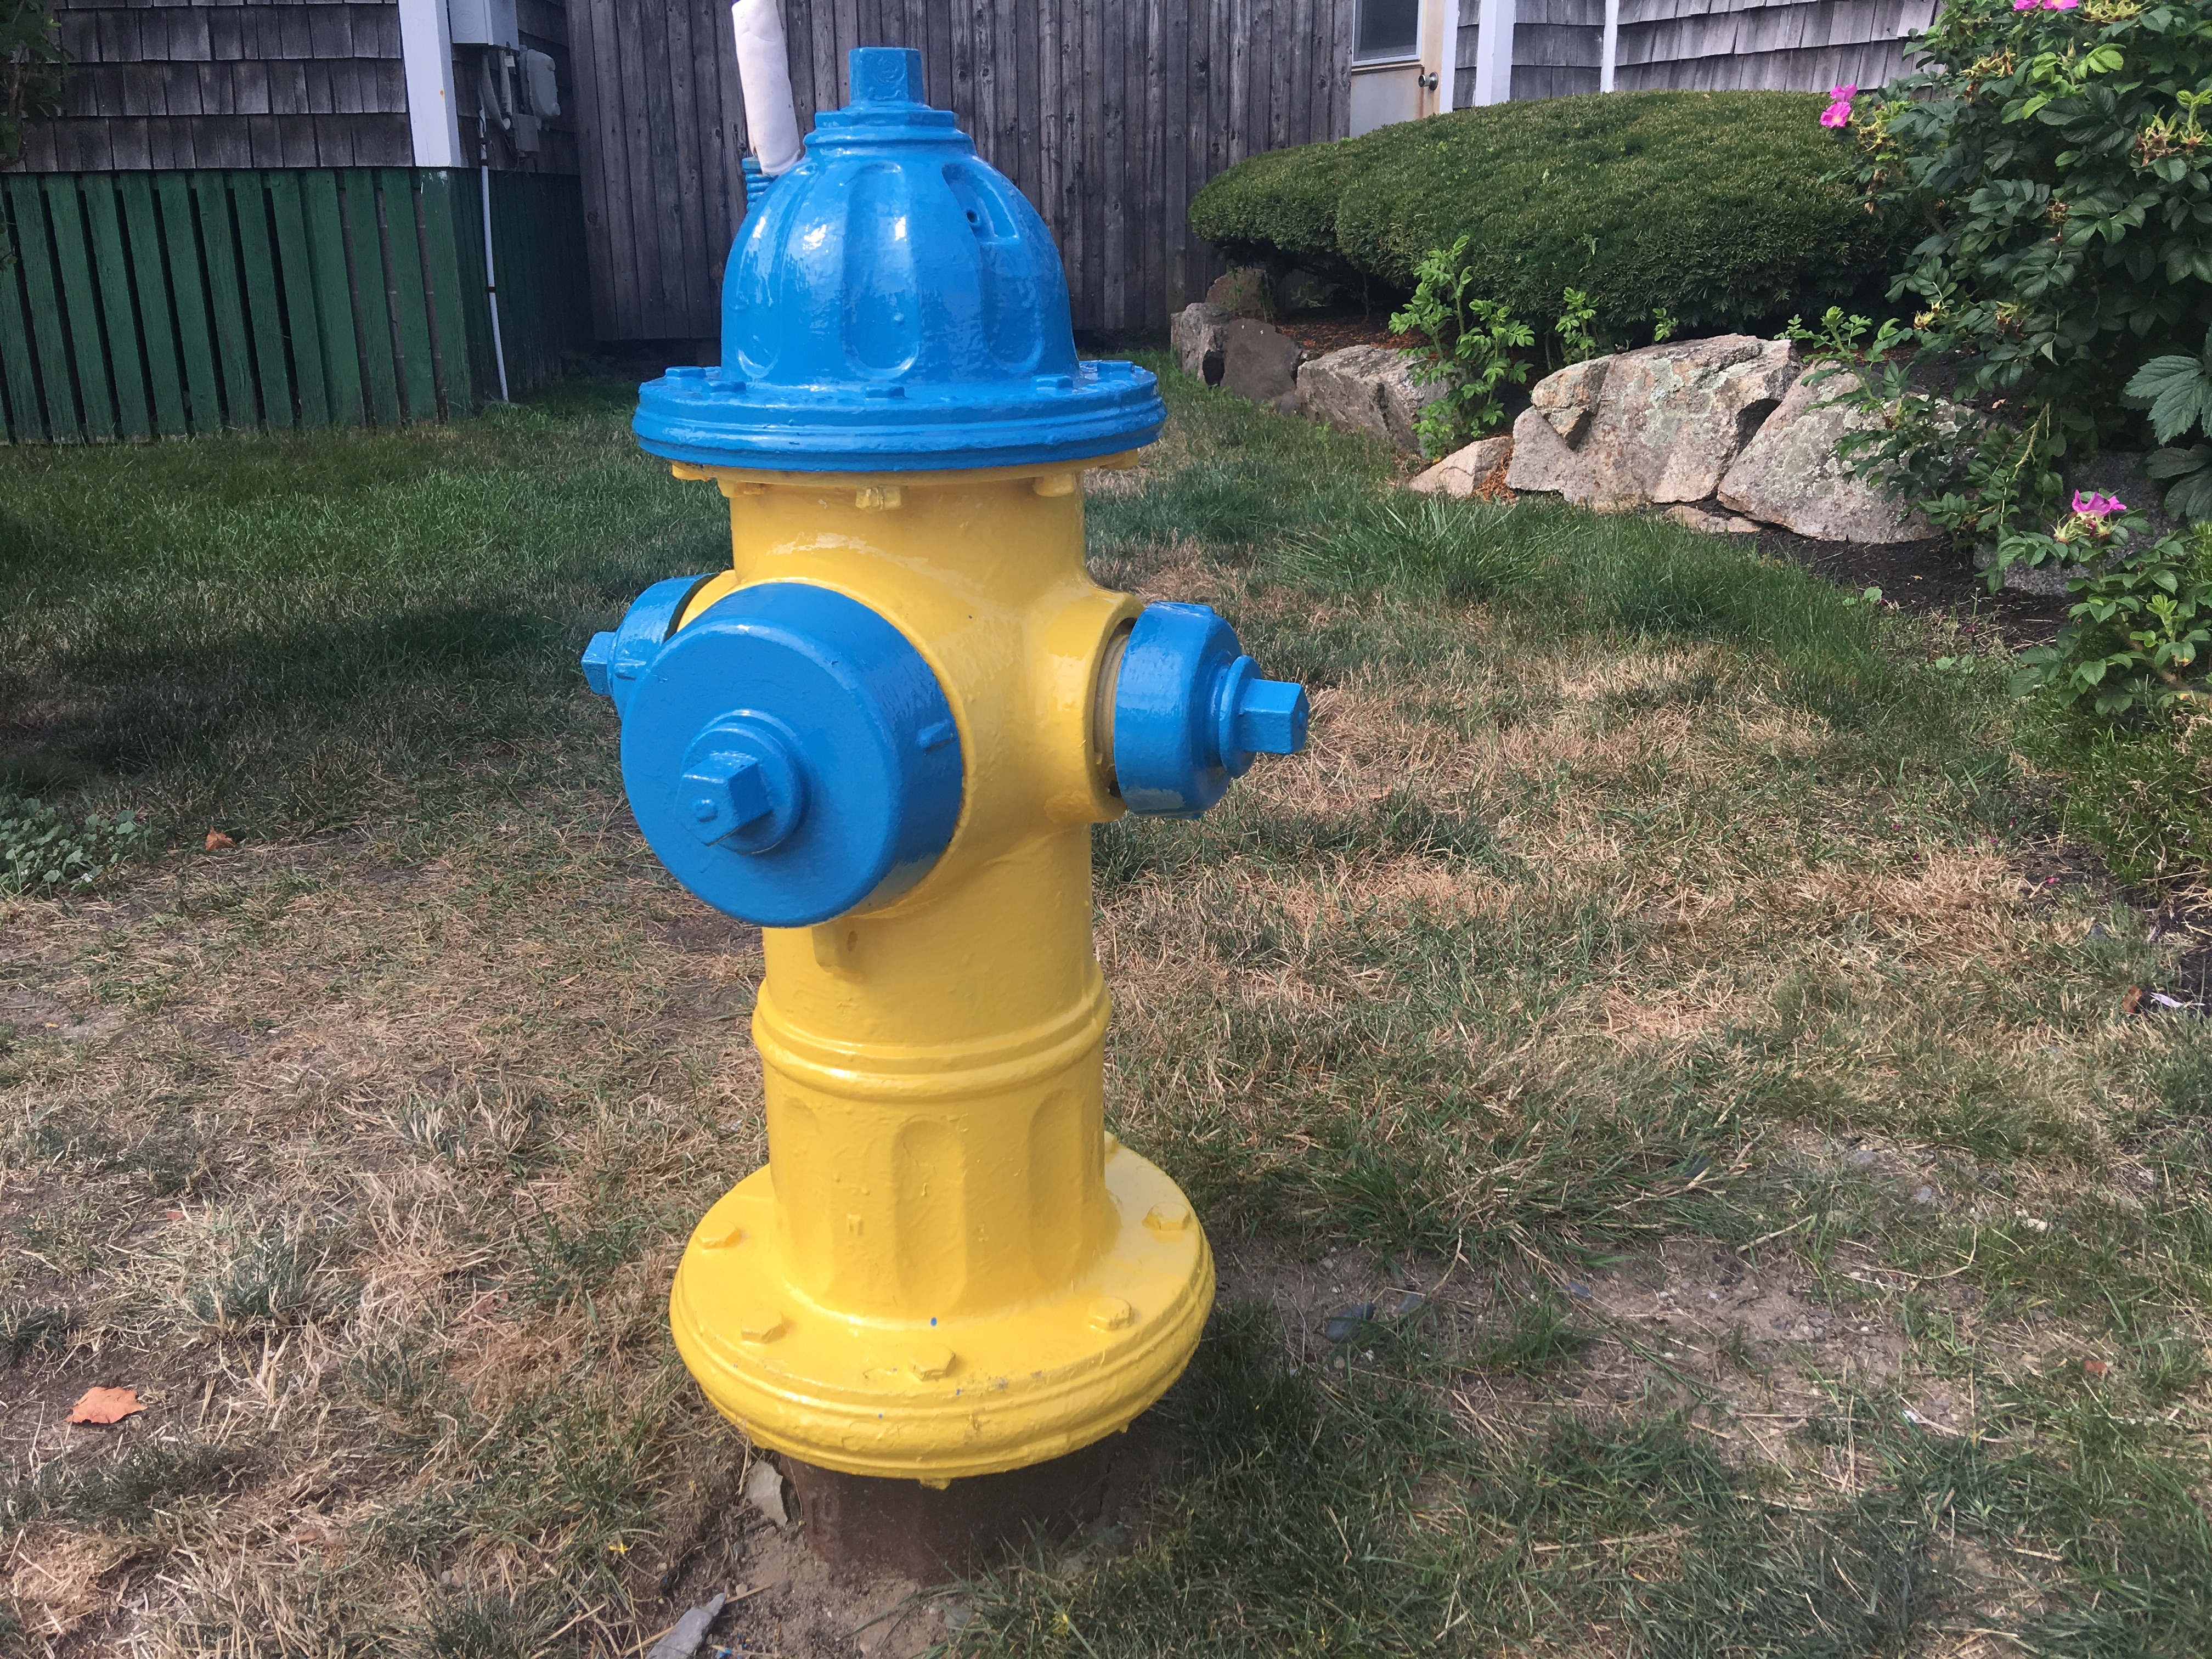 File:Yellow and Blue Fire Hydrant.jpg - Wikimedia Commons